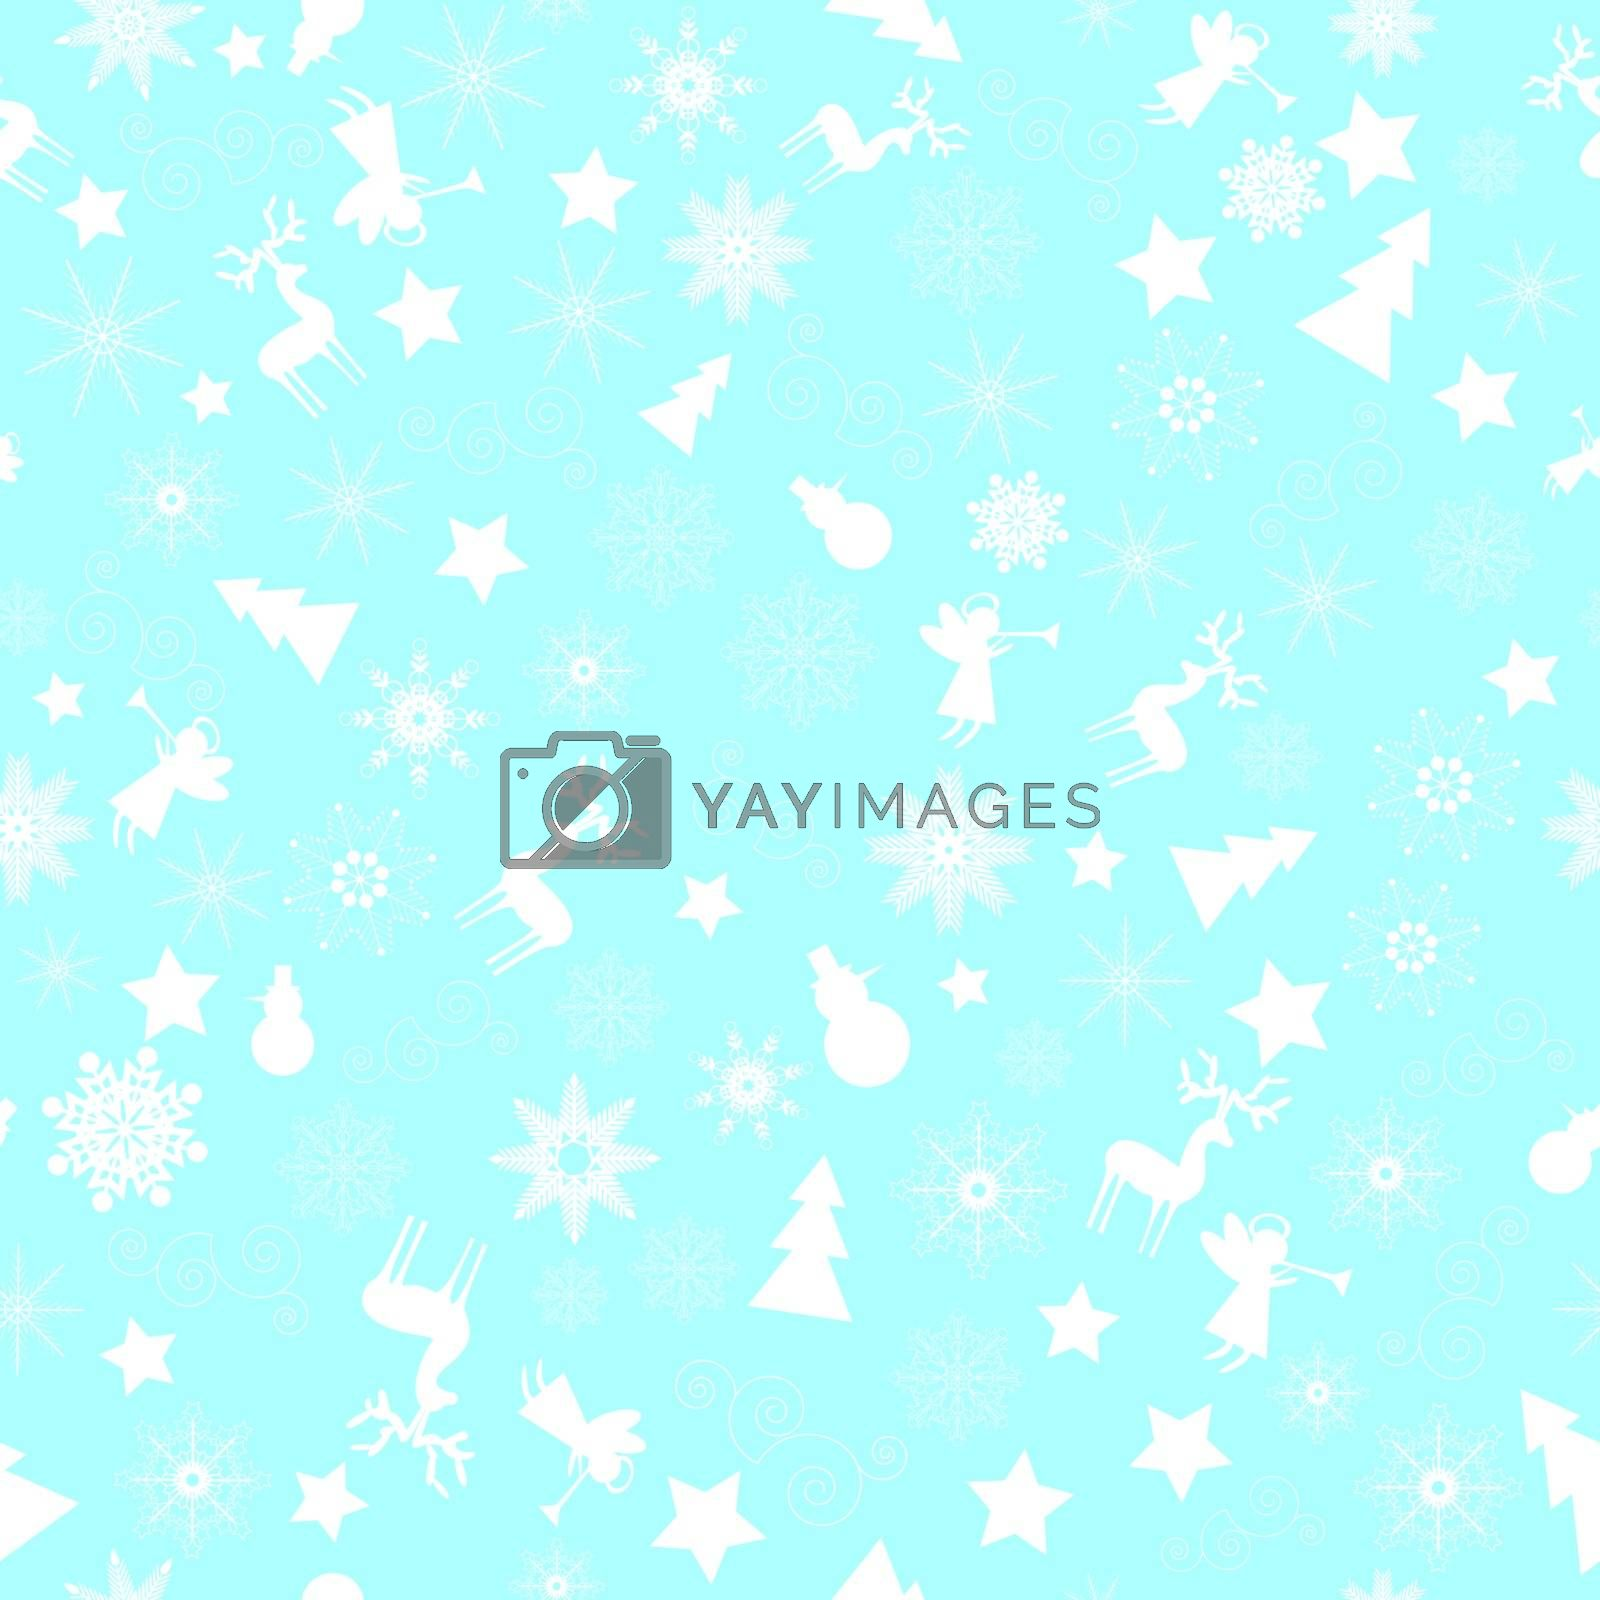 Snowflakes, Christmas decorations on blue background.